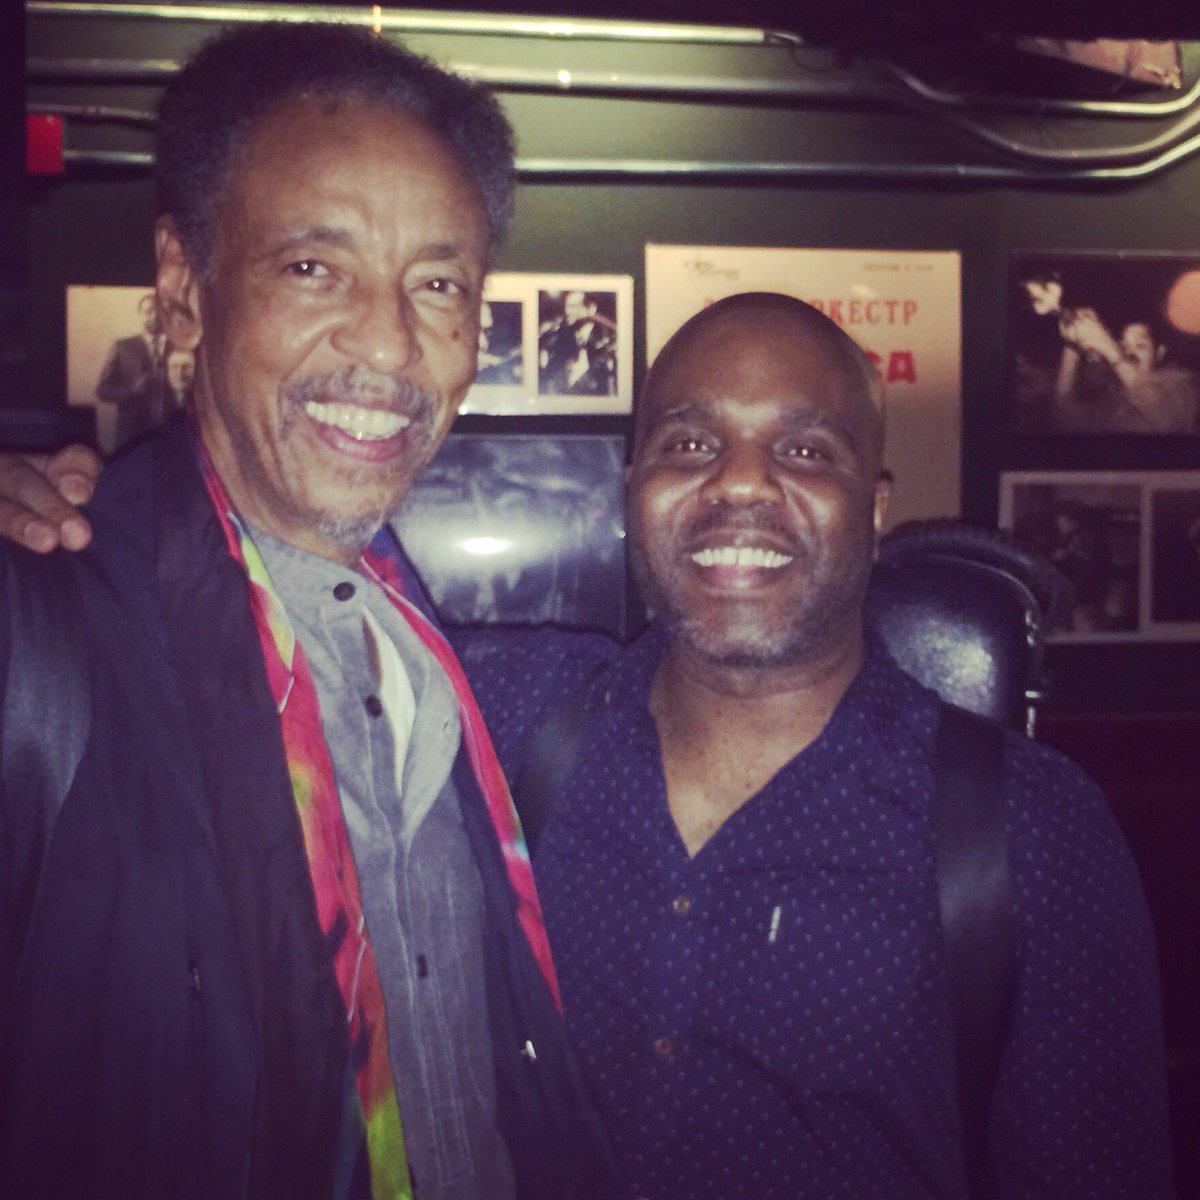 It was great to chat with the great Henry Threadgill after his set at @vanguardjazz tonight.